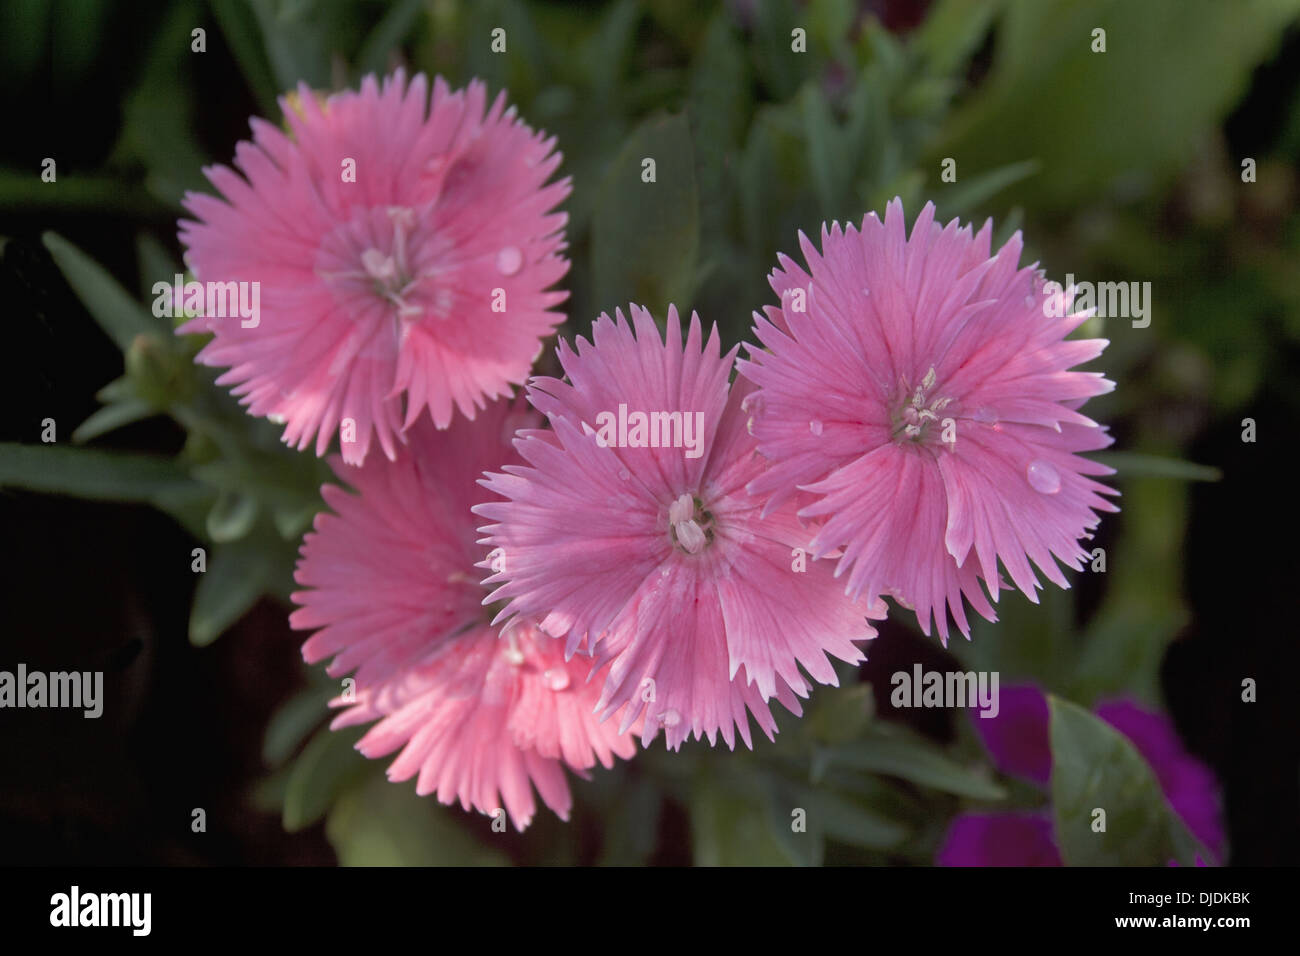 Dianthus Chinensis Or China Pink Flowers In Garden Pune Stock Photo